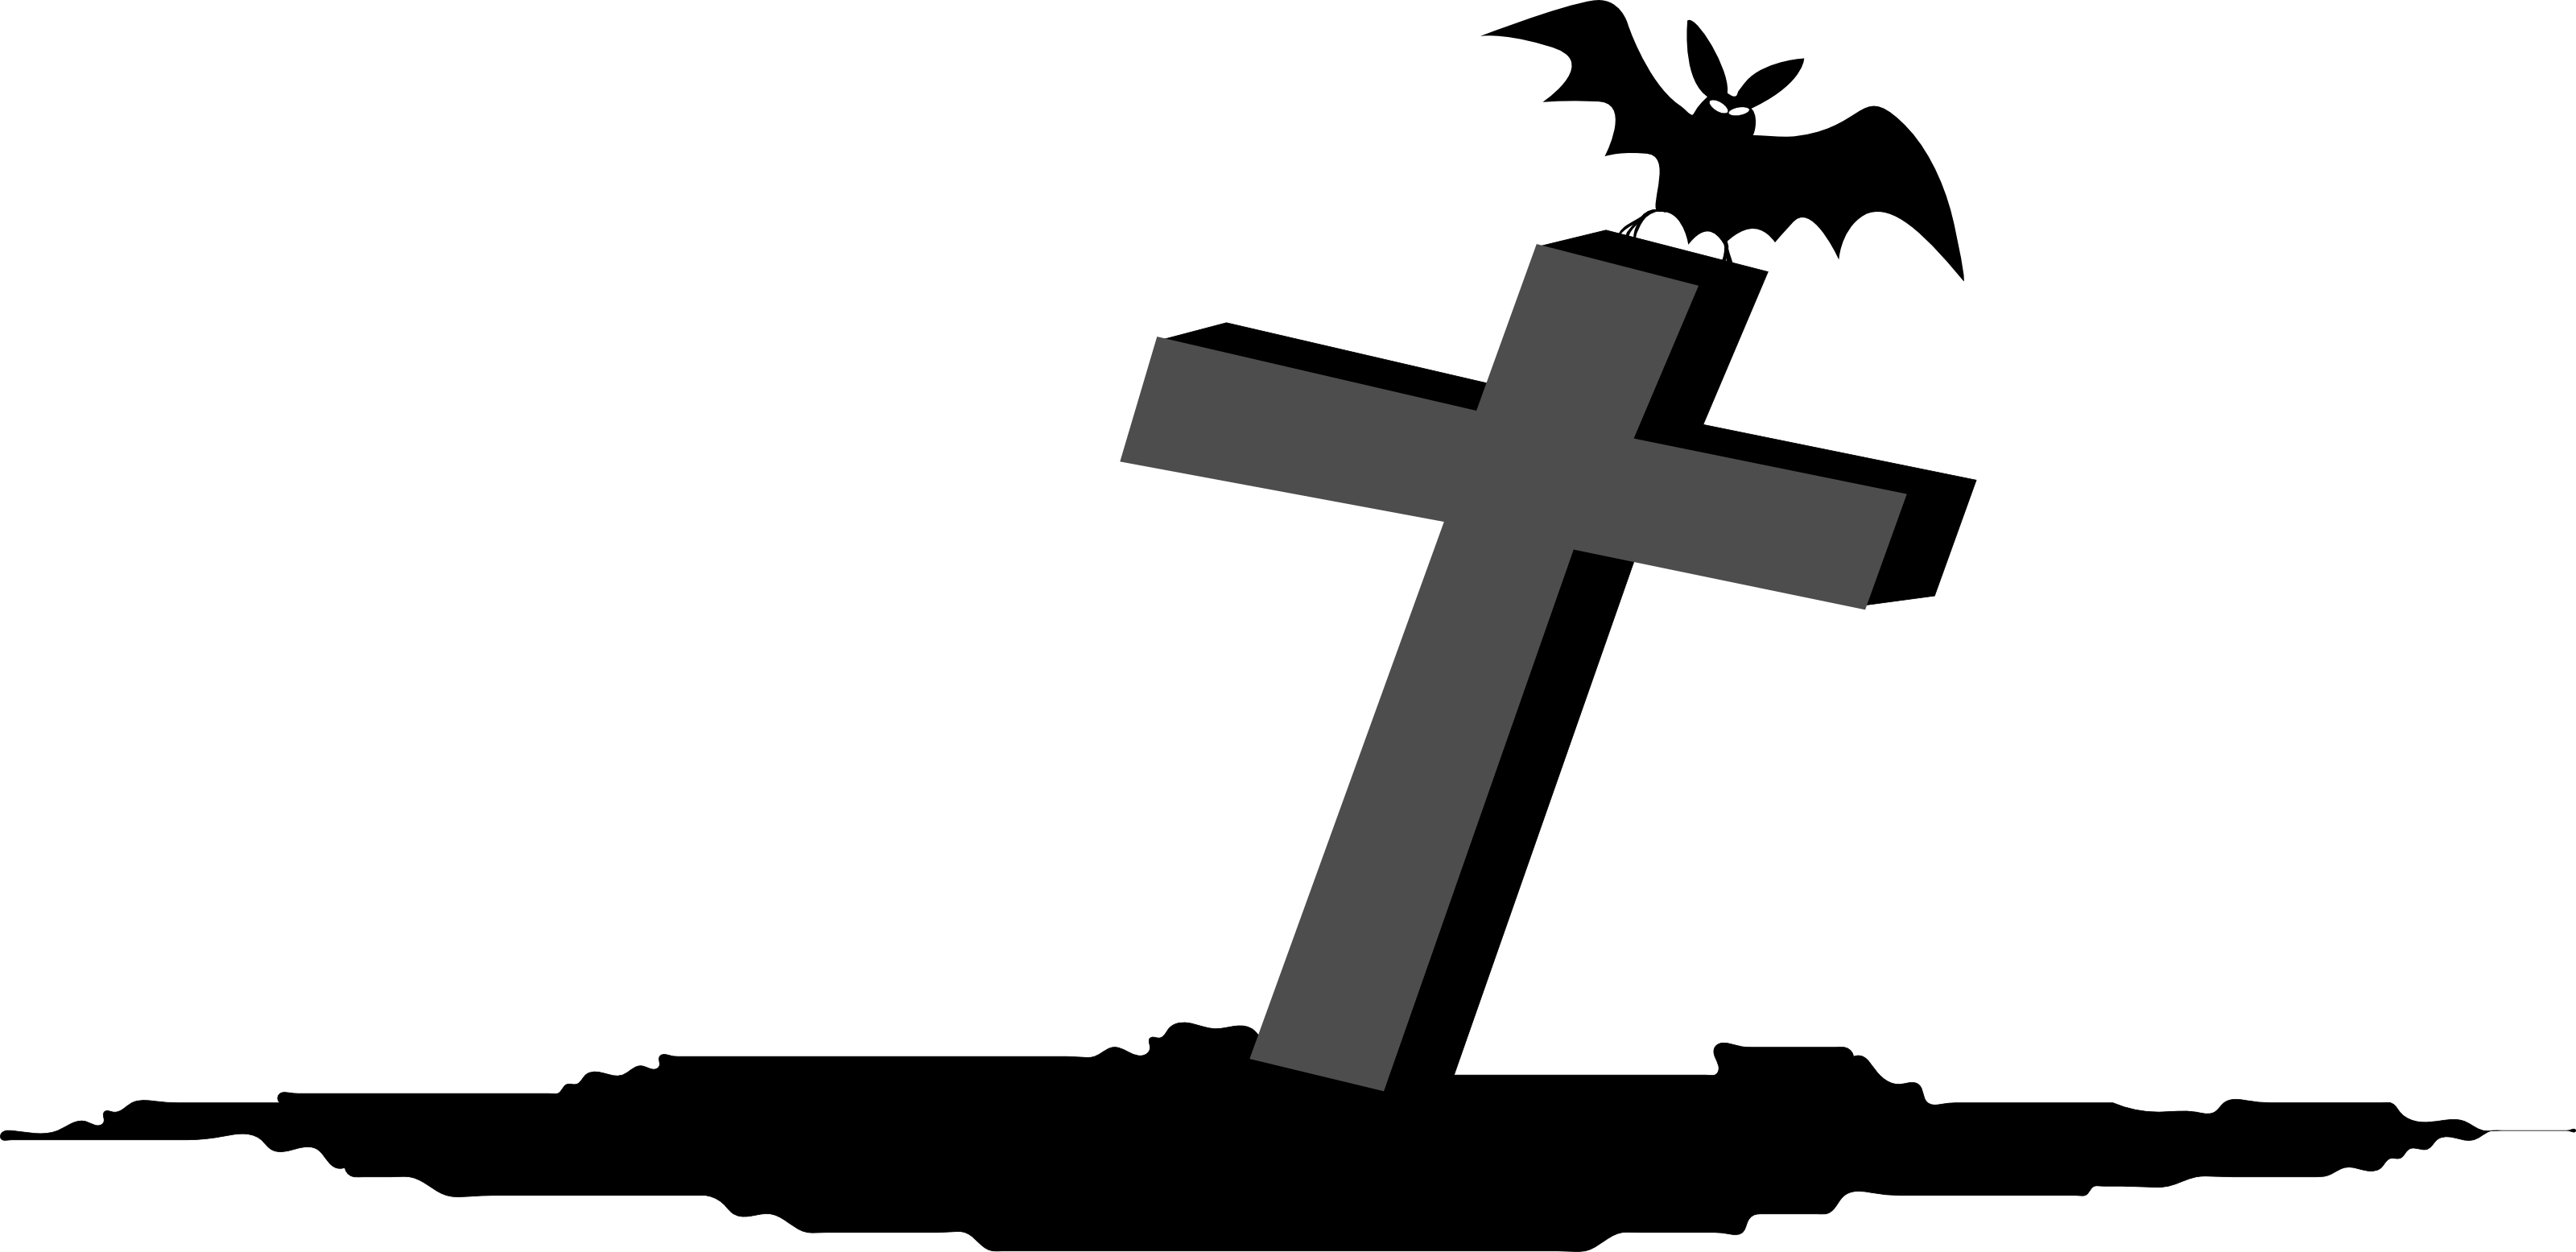 Cross gravestone clipart png black and white Gravestone PNG images free download png black and white